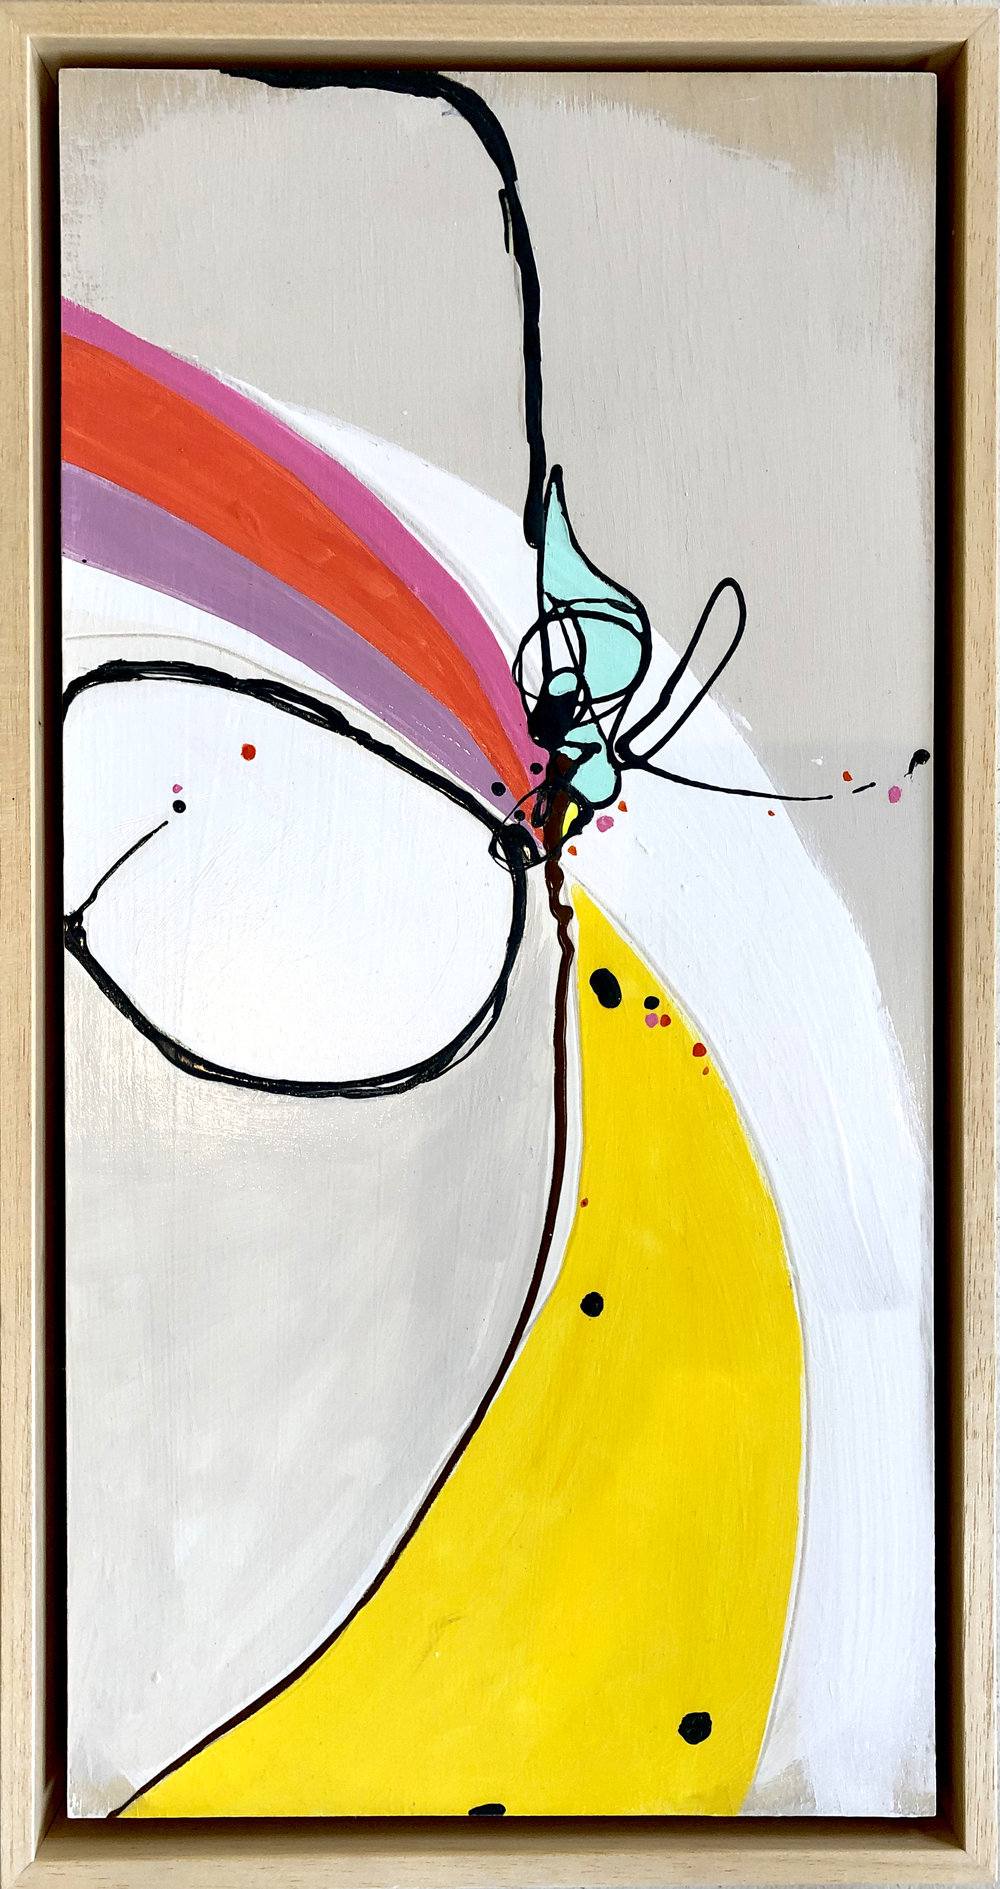 """Fireworks 4 - 11.5"""" x 21.5""""Mixed media on paper, mounted on panel, framed$325"""